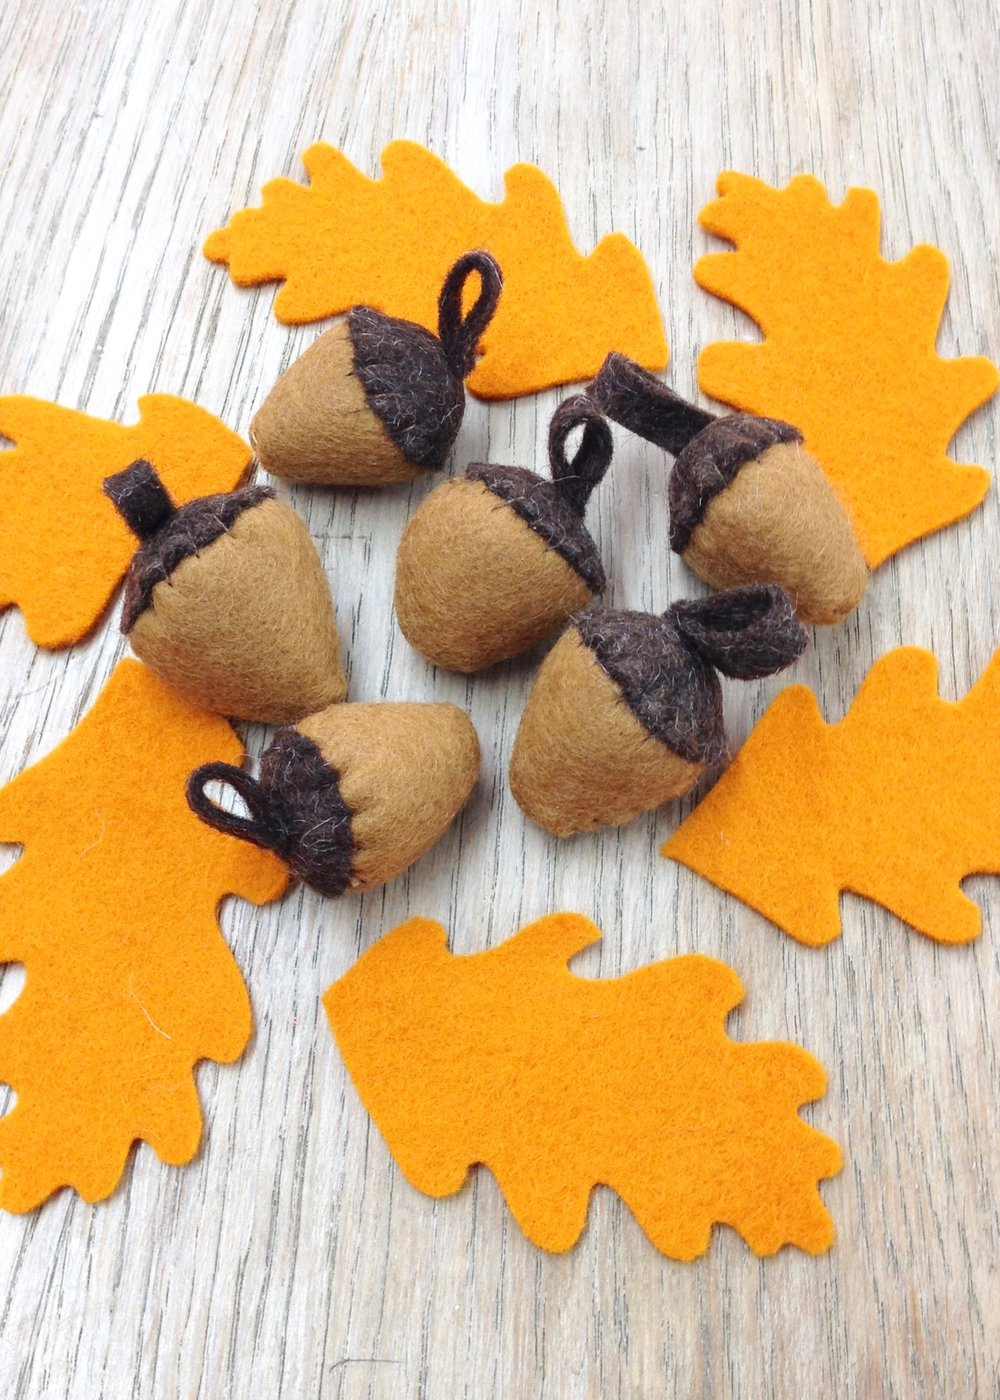 Felt oak leaves and acorns by Laura Mirjami | Mirjami Design